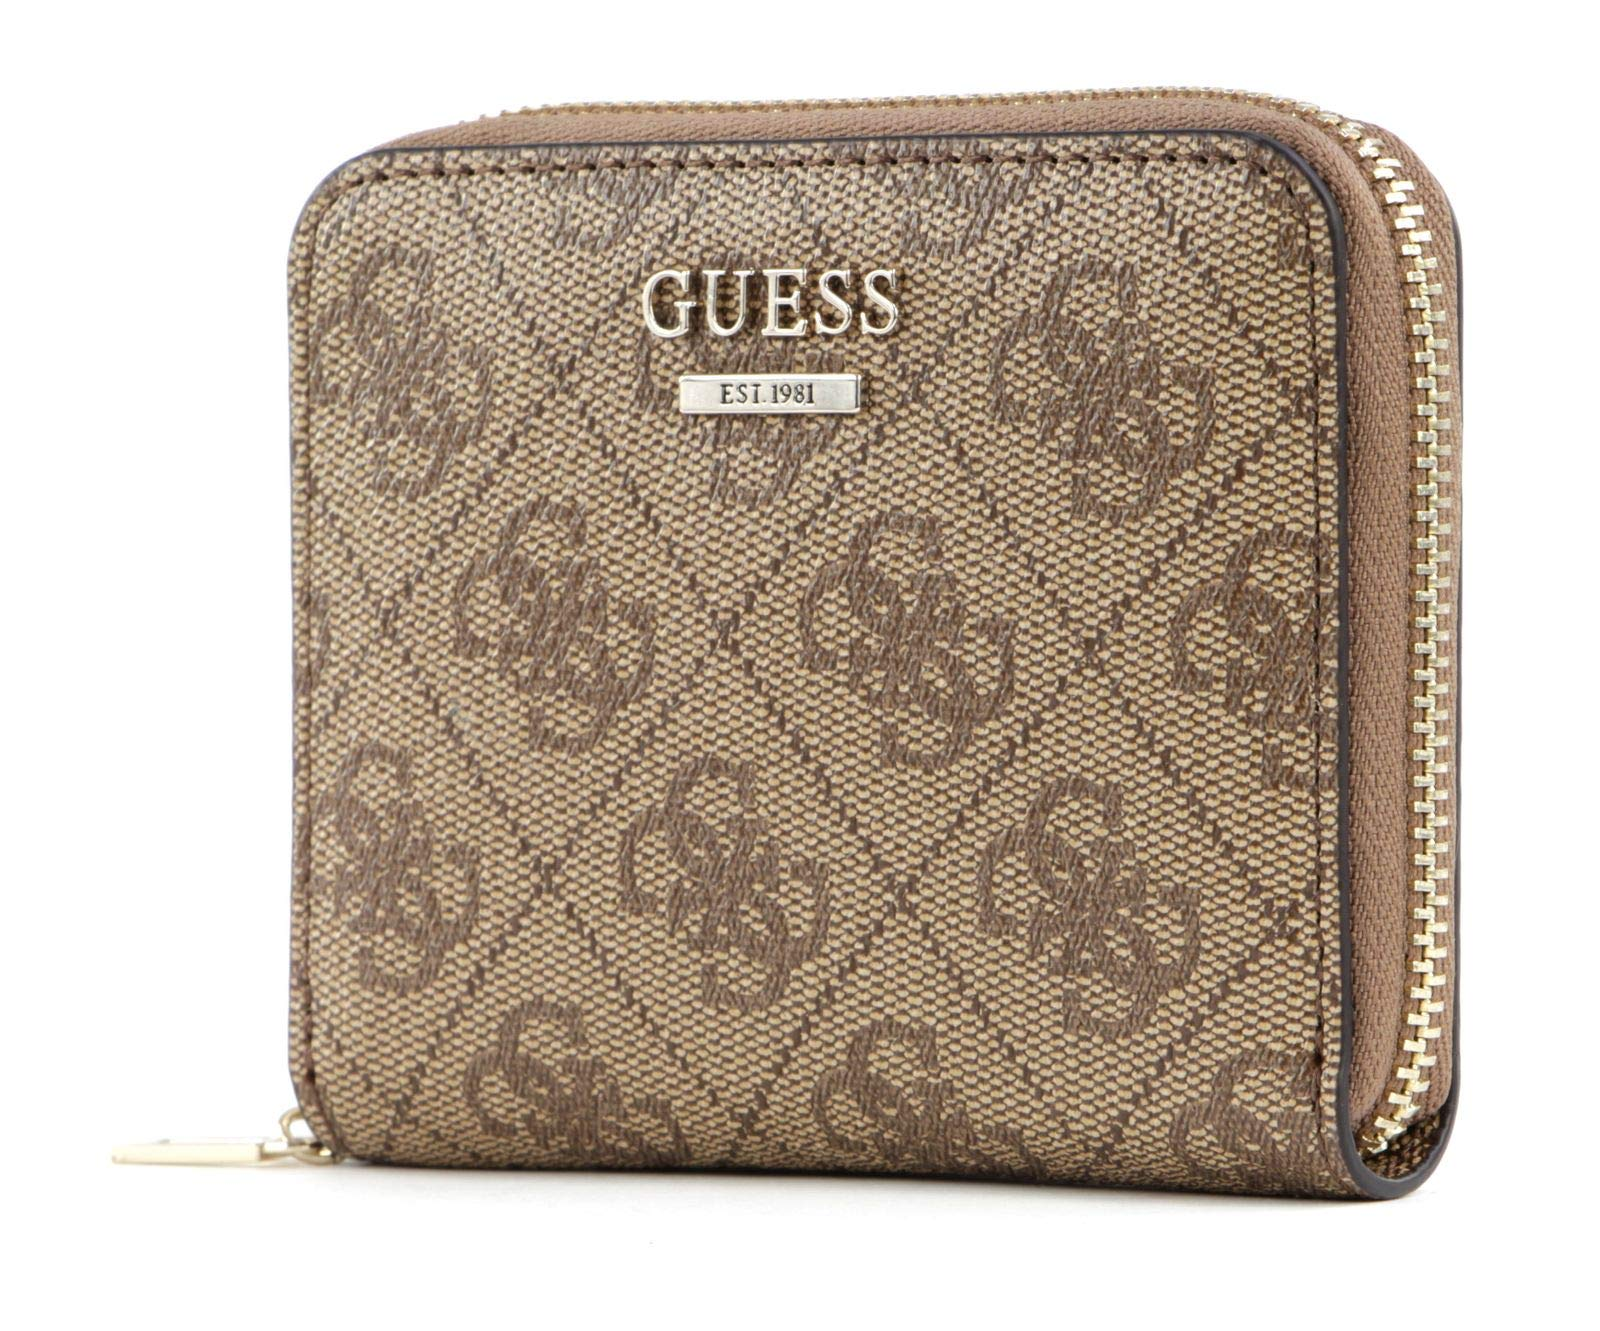 GUESS CATHLEEN SLG SMALL ZIP AROUND